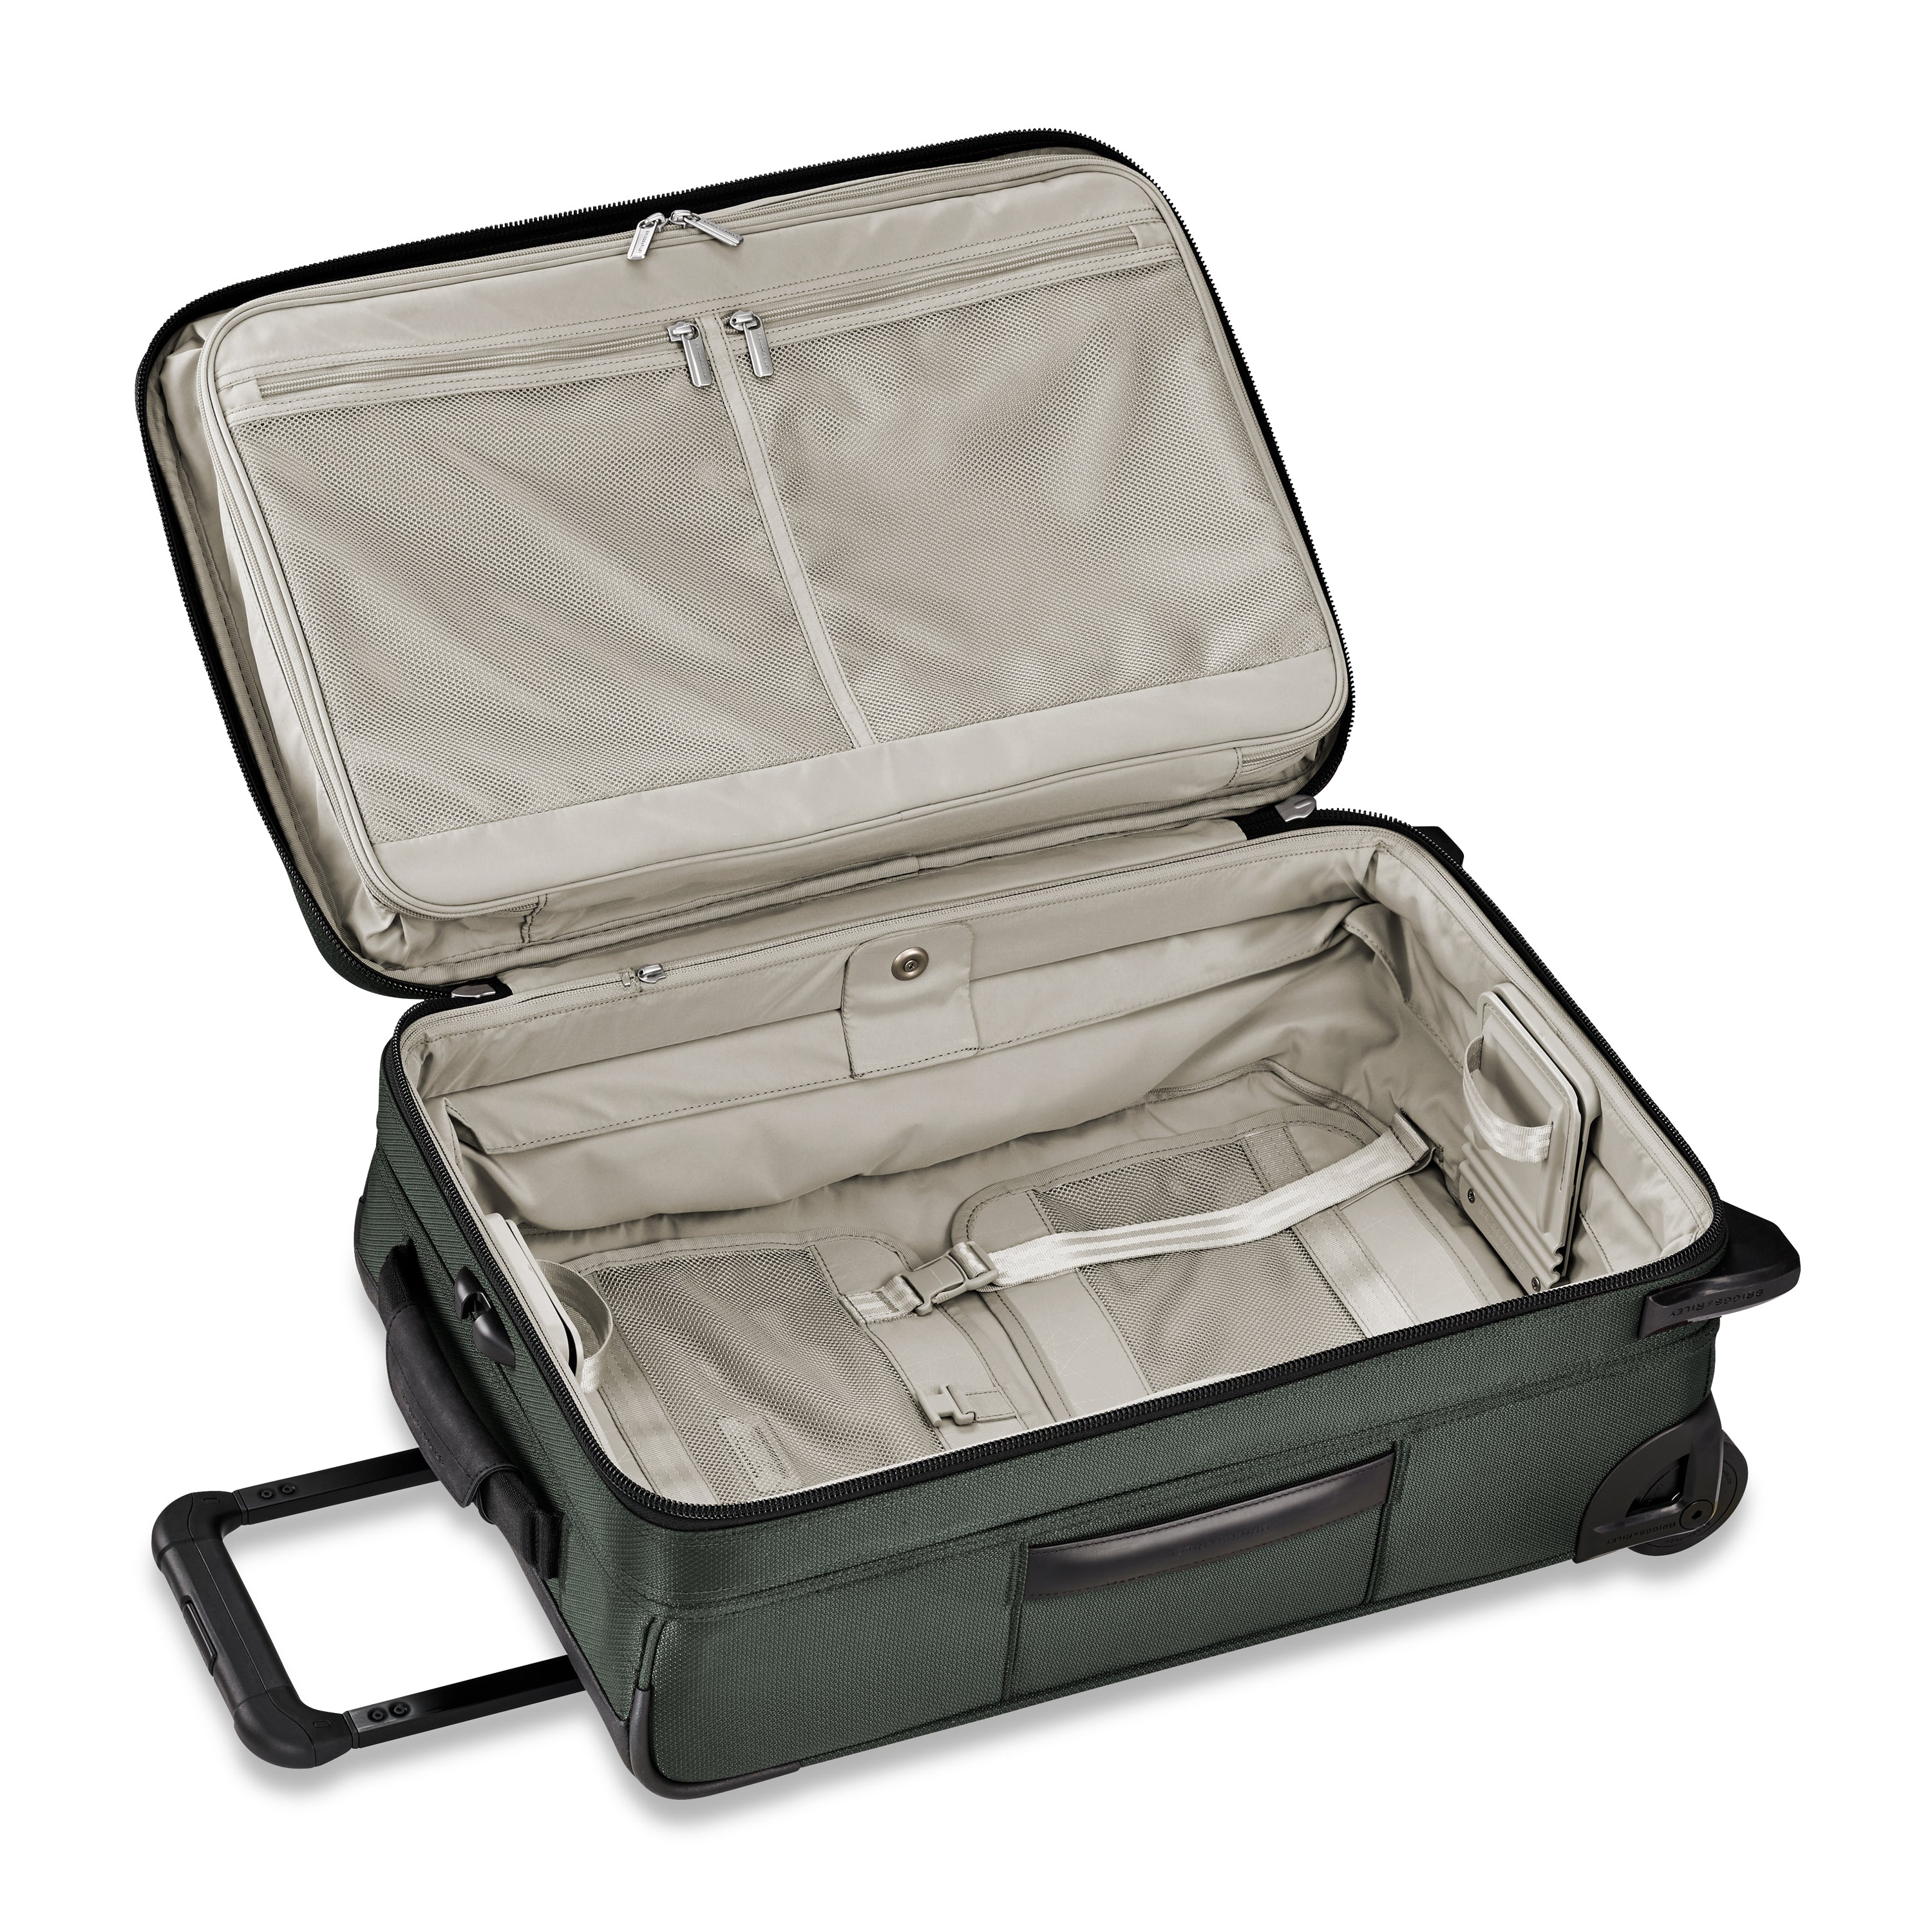 Briggs & Riley Transcend Tall Carry-On Expandable Upright - Rainforest | MEGO